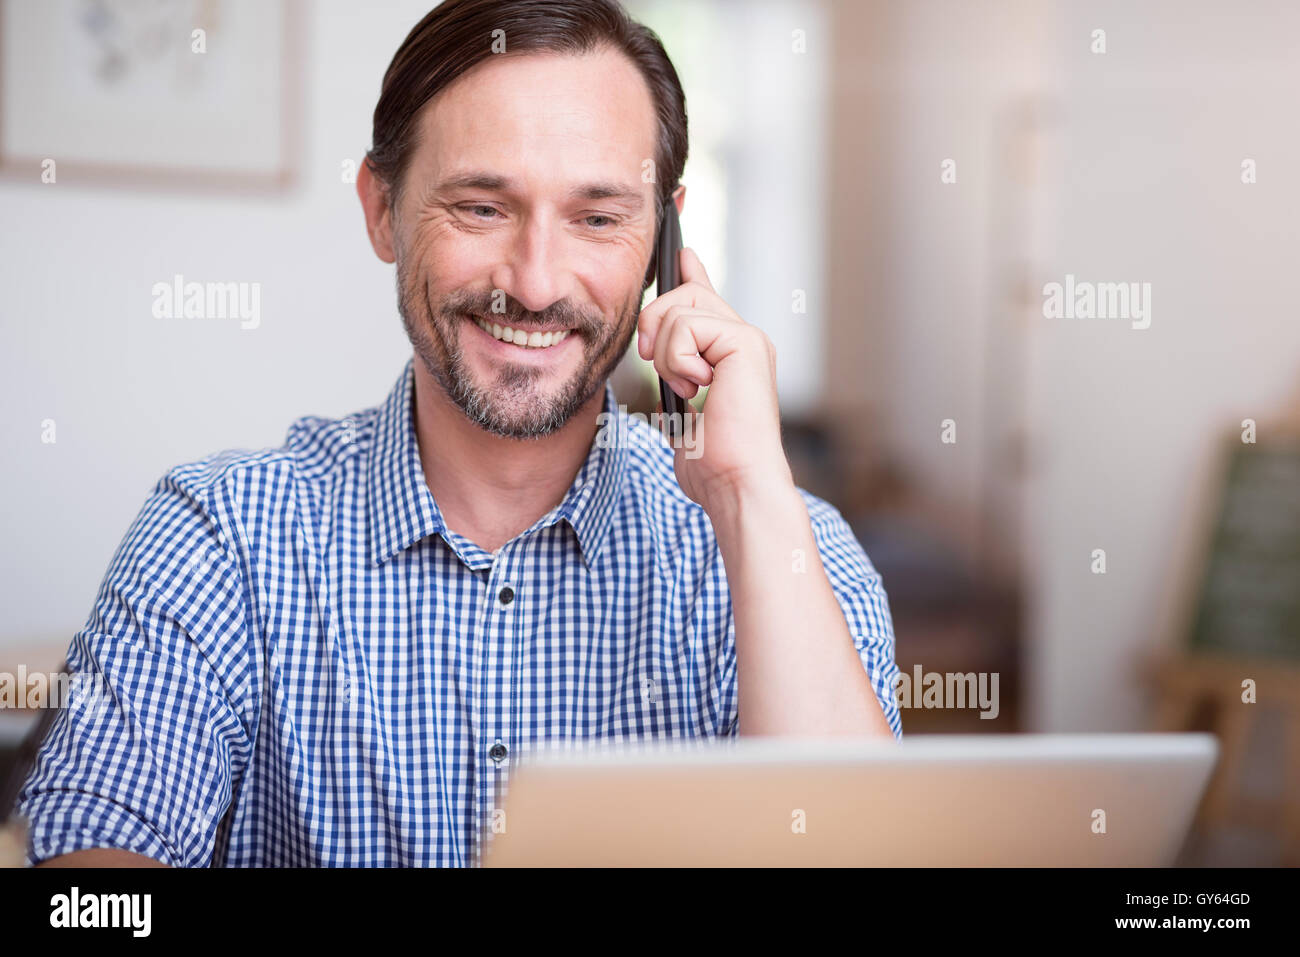 Handsome man using new technologies - Stock Image